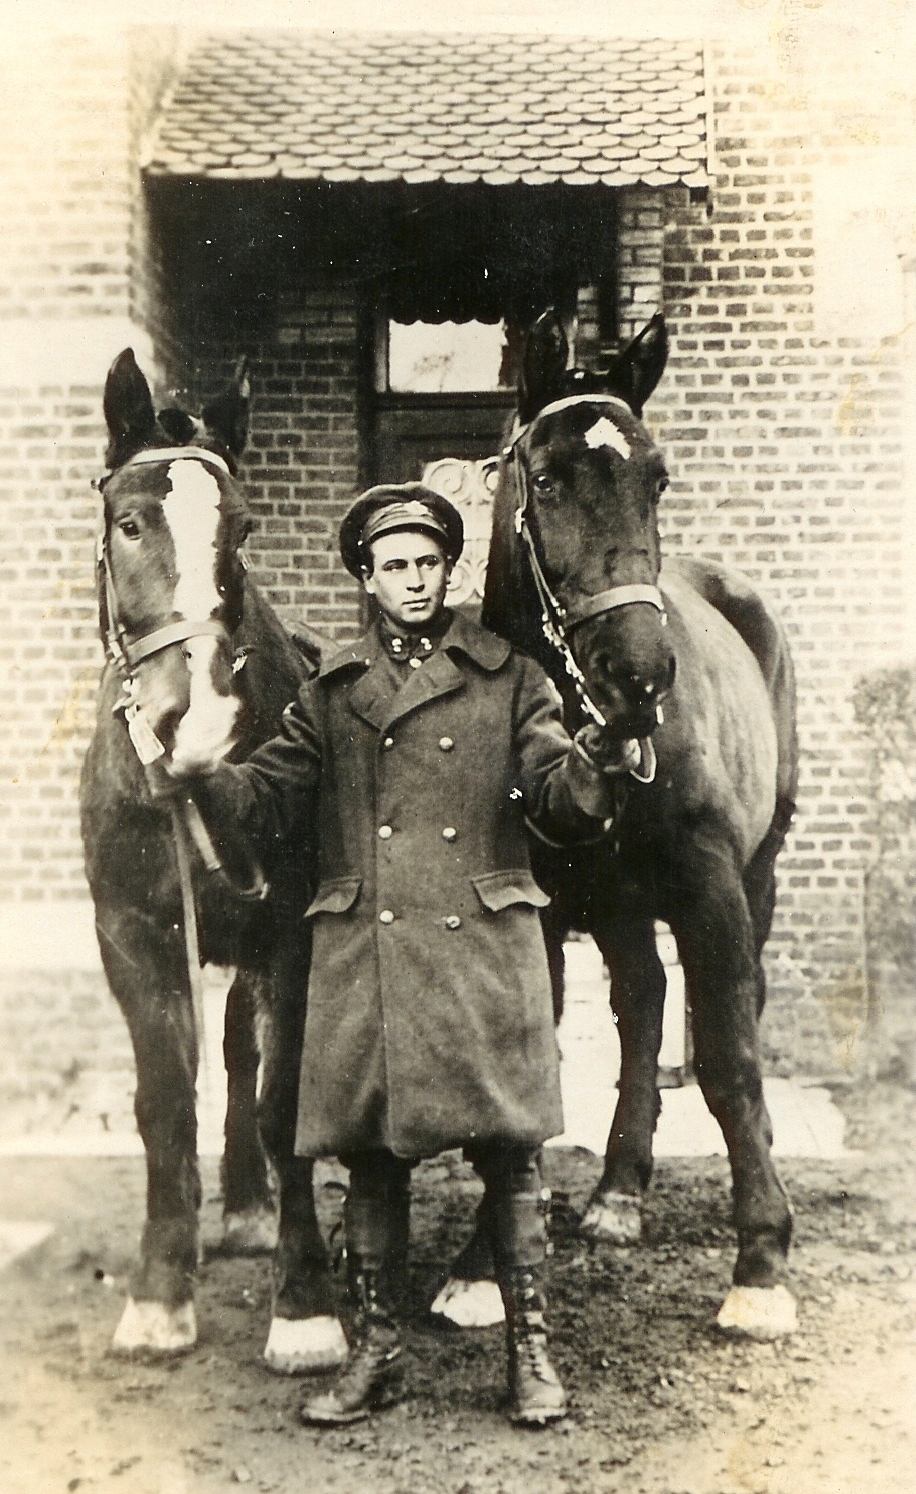 John Maley with horses during World War I. Revelstoke Museum & Archives photo P4607